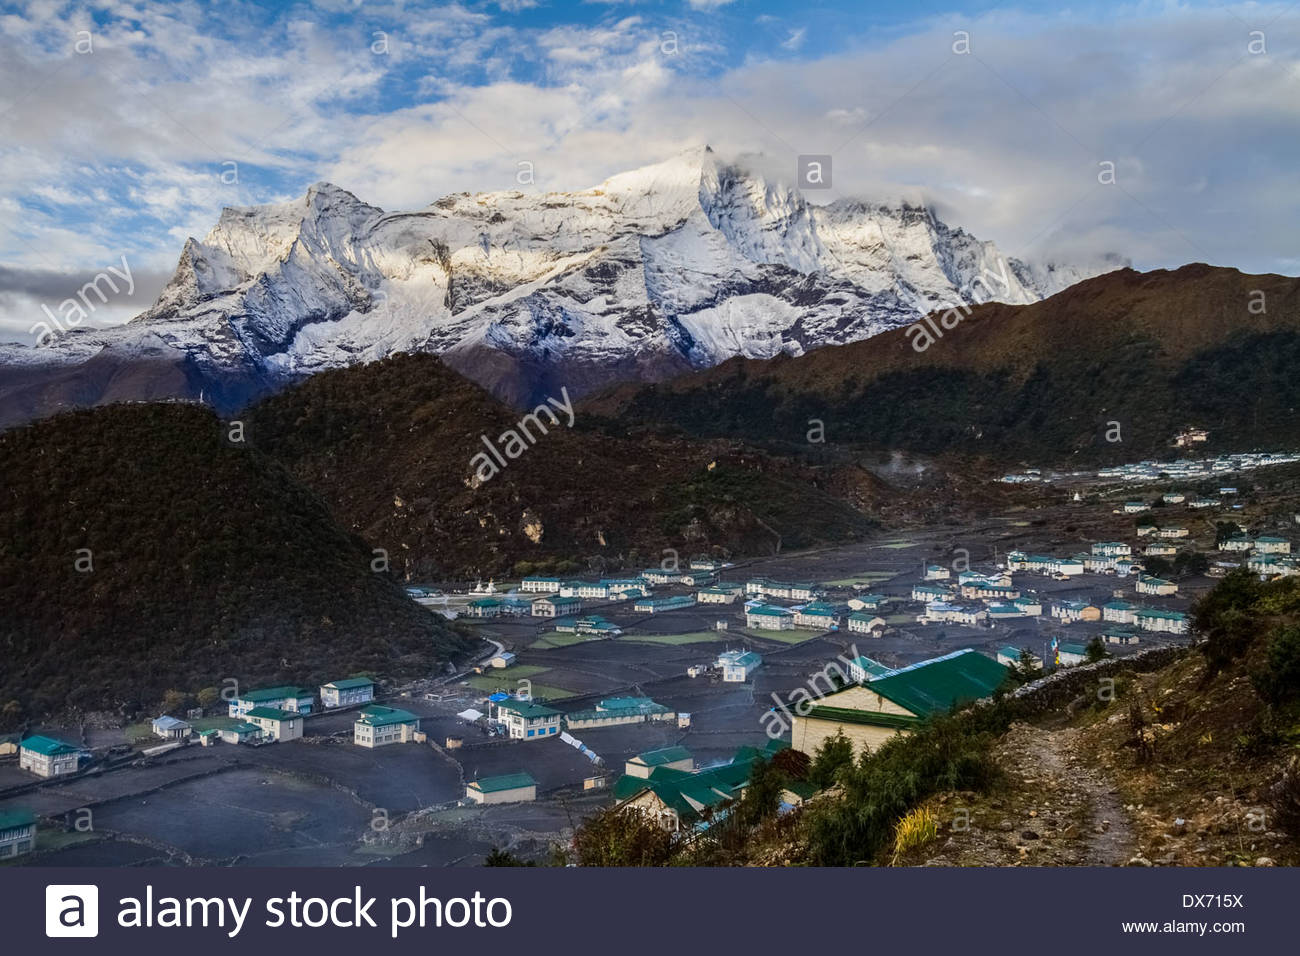 View of Khumjung village and snowcapped mountain - Nepal - Stock Image